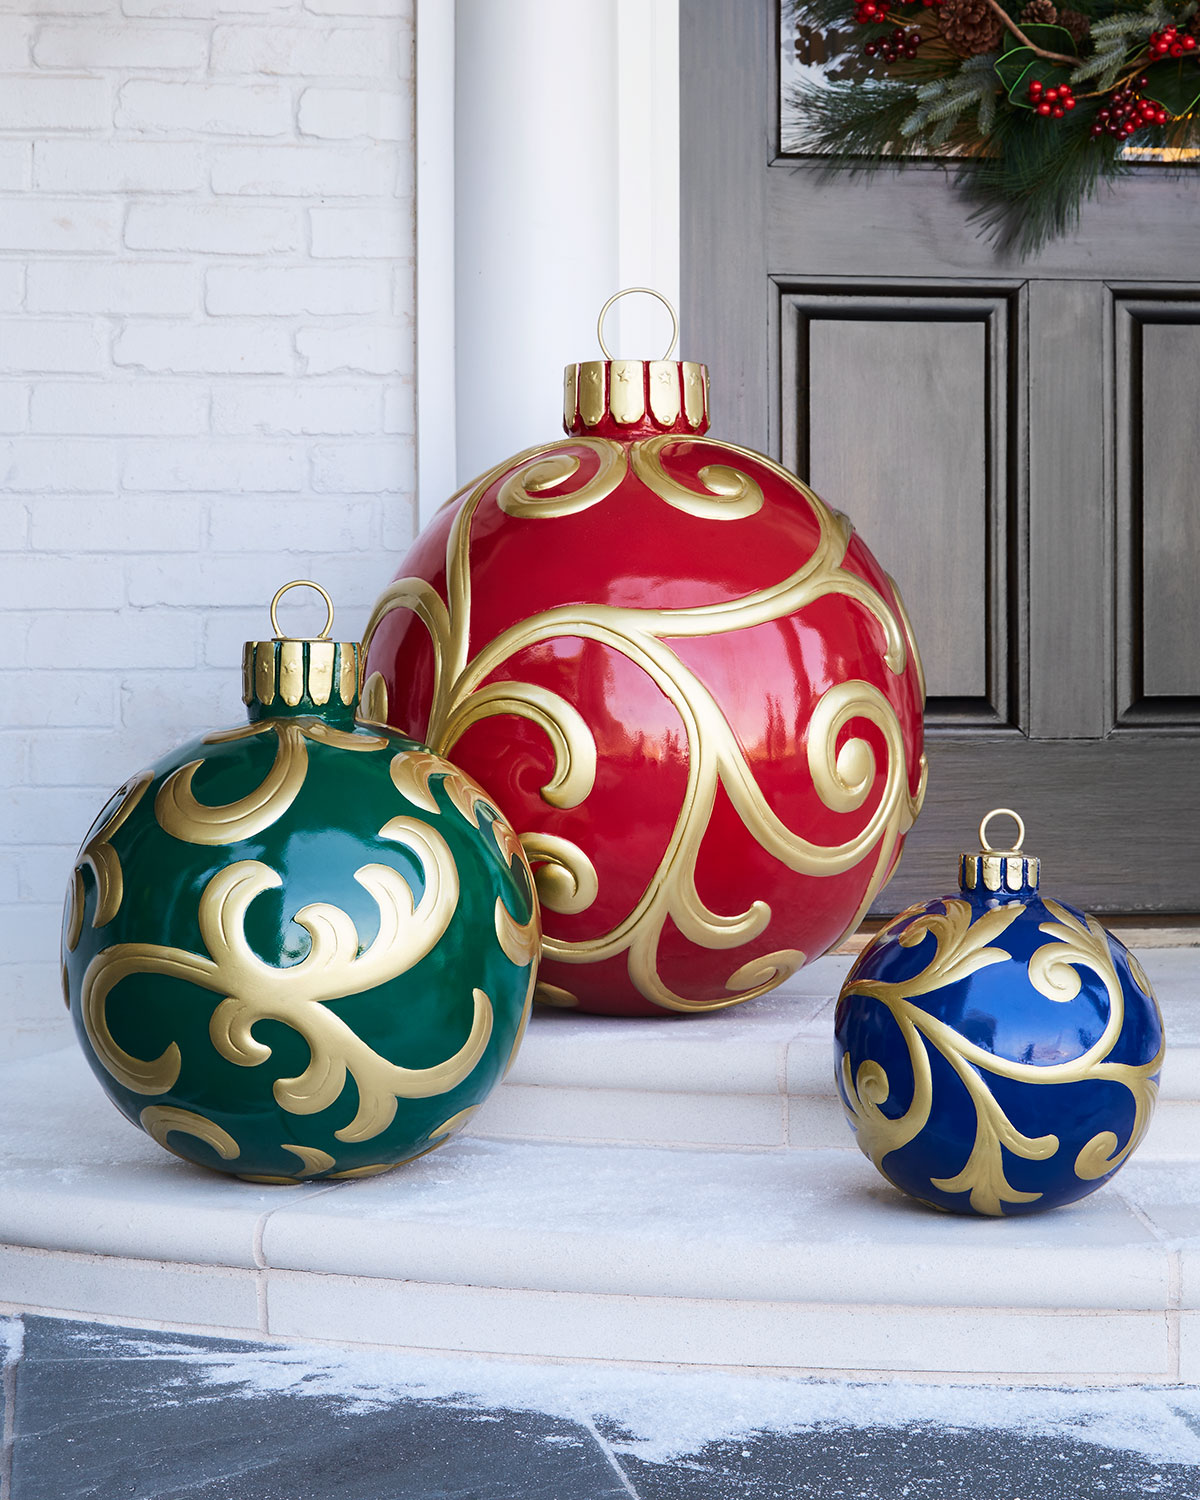 Outdoor Christmas Ornament Large Outdoor Christmas Diy Large Outdoor Christmas Ornaments Christmas Ornaments